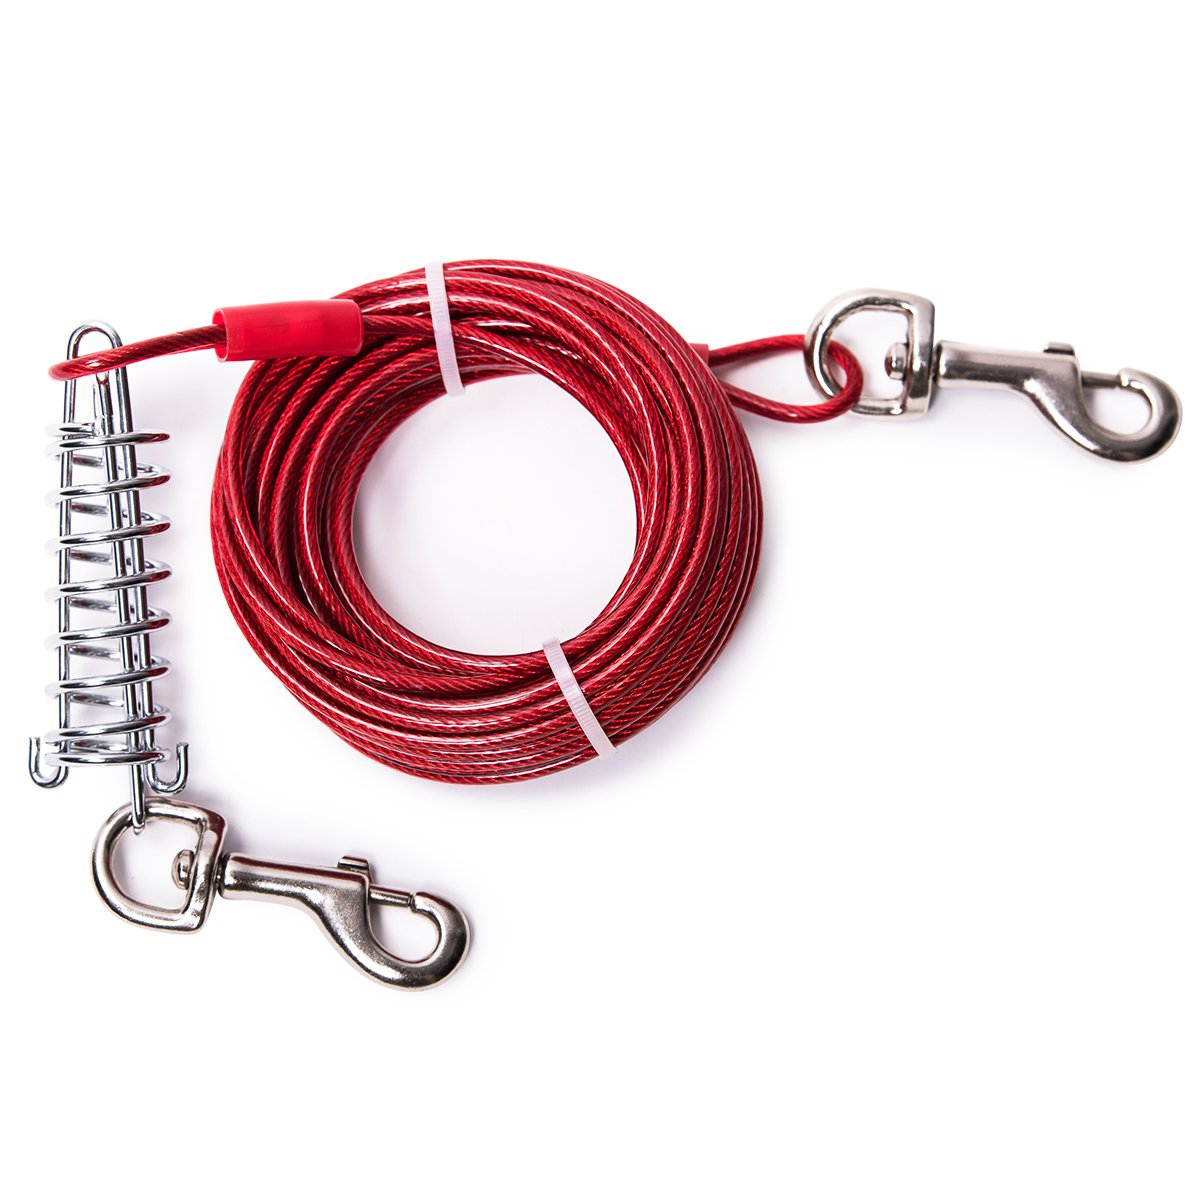 MFPS Favorite Tie Out Cable for Dogs, 30-feet, 3 Colors (Red) by Favorite